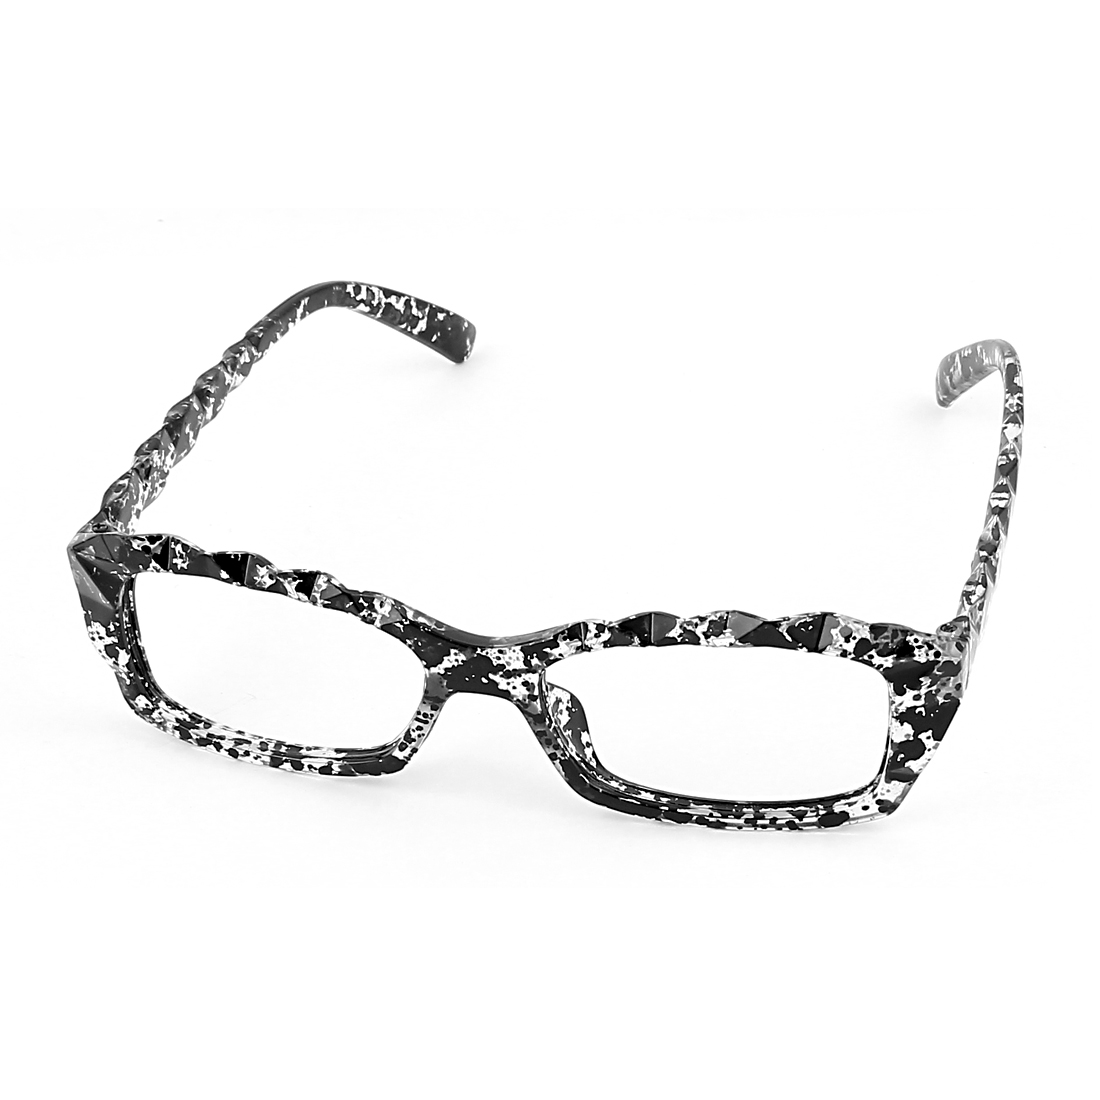 Geek Faceted Carved Plastic Decorative Lensless Glasses Eyeglasses Frame Black